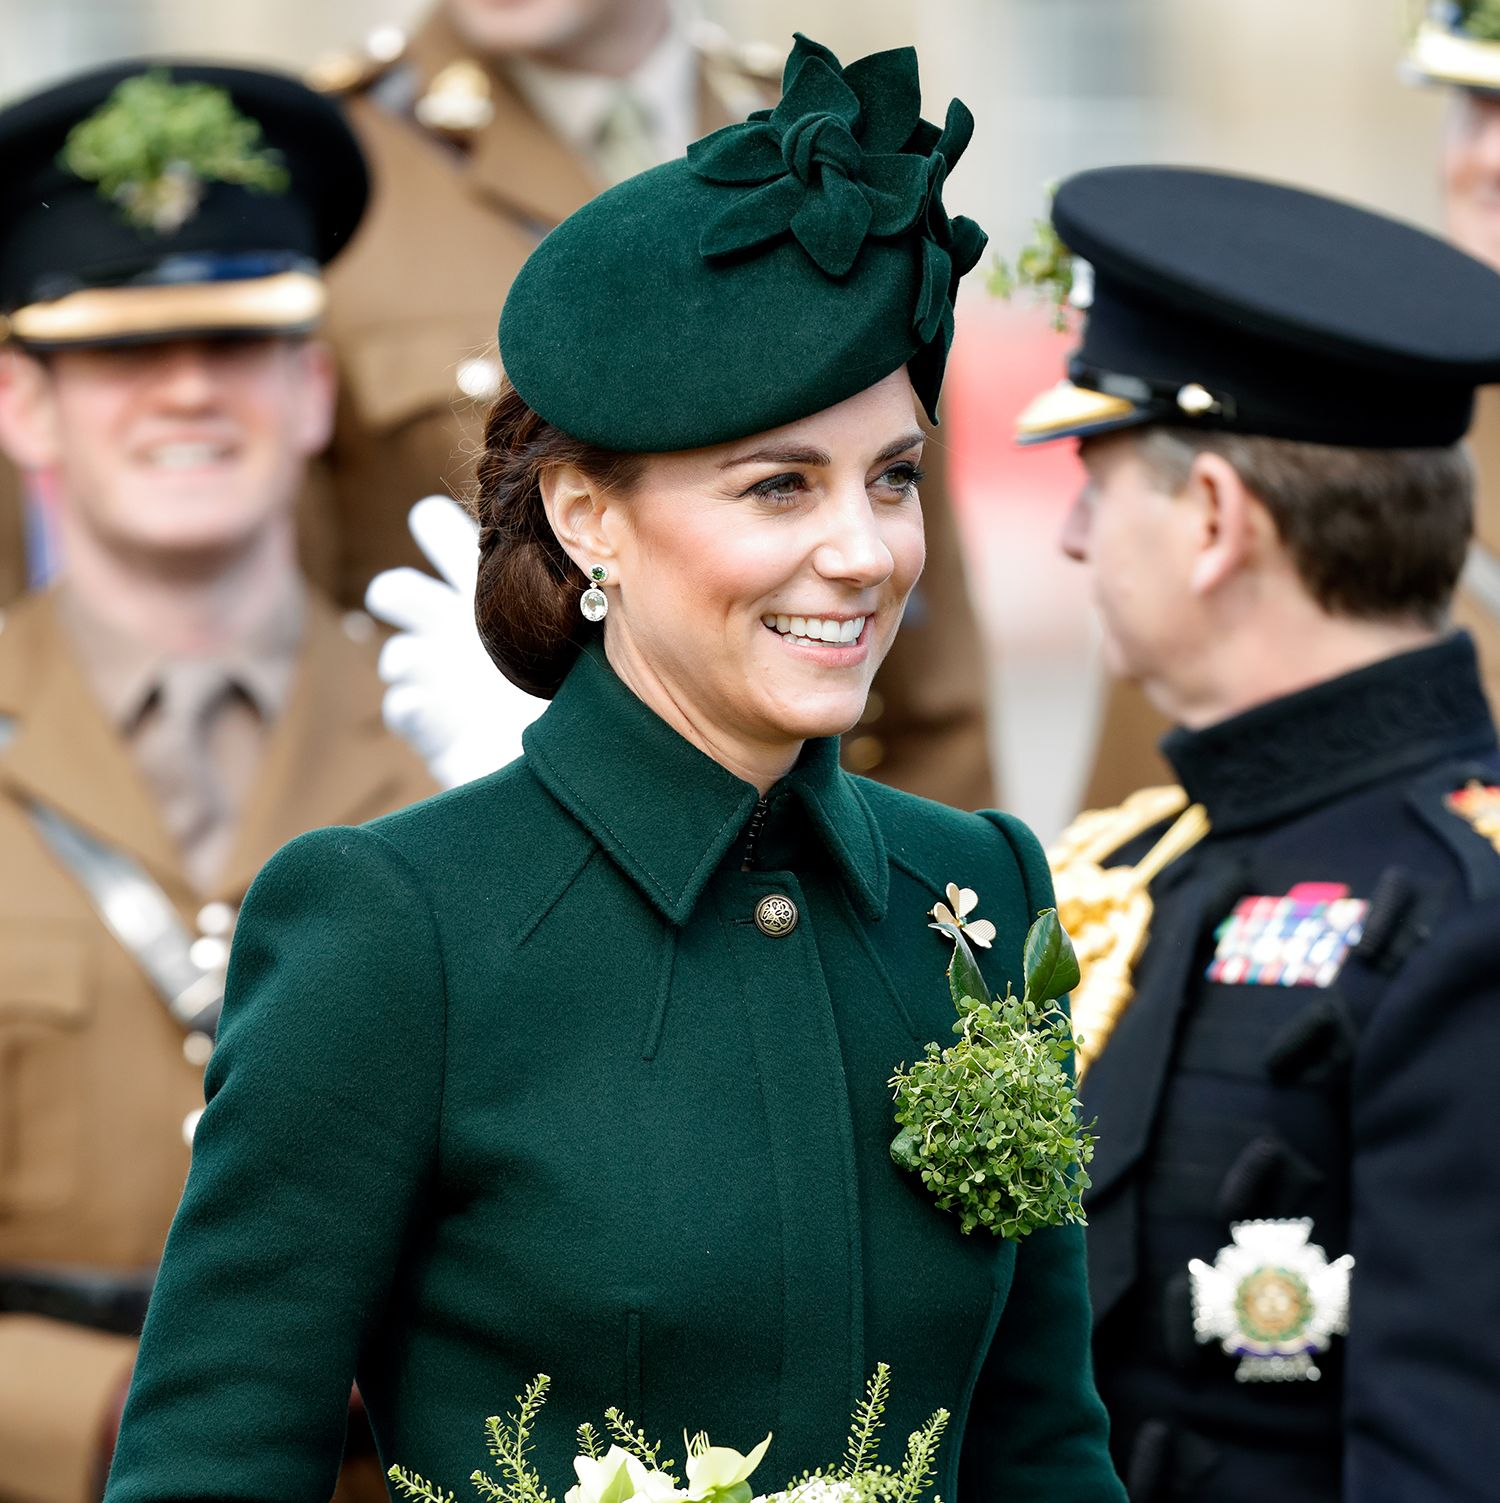 Kate Middleton Put an End to Pregnancy Rumors on Her St Patrick's Day Royal Appearance